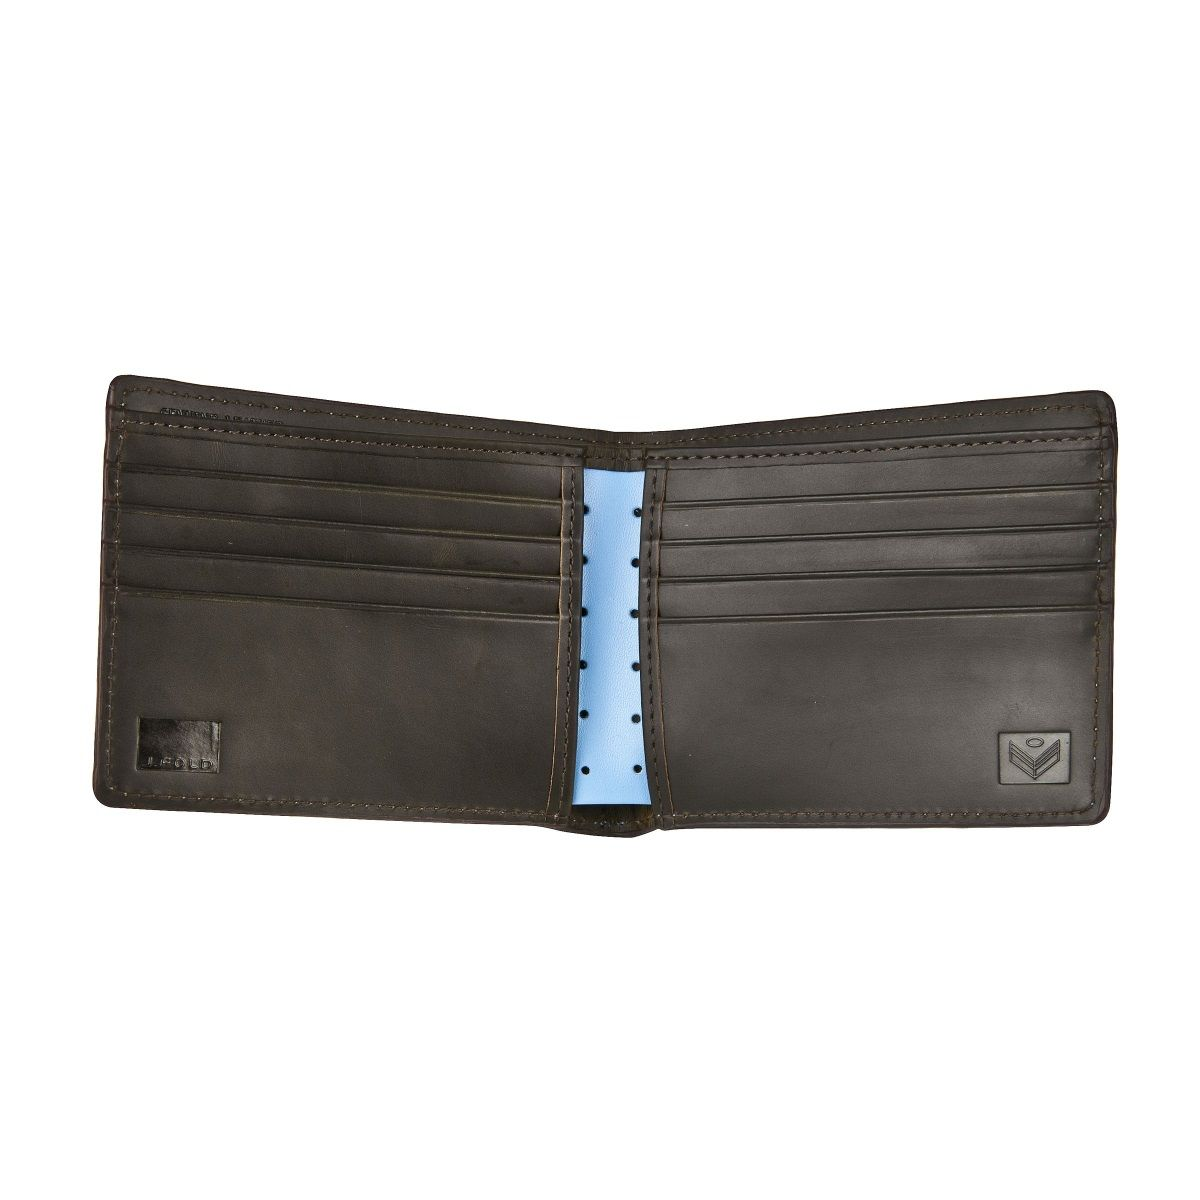 J.FOLD Loungemaster Leather Wallet  - Light Blue